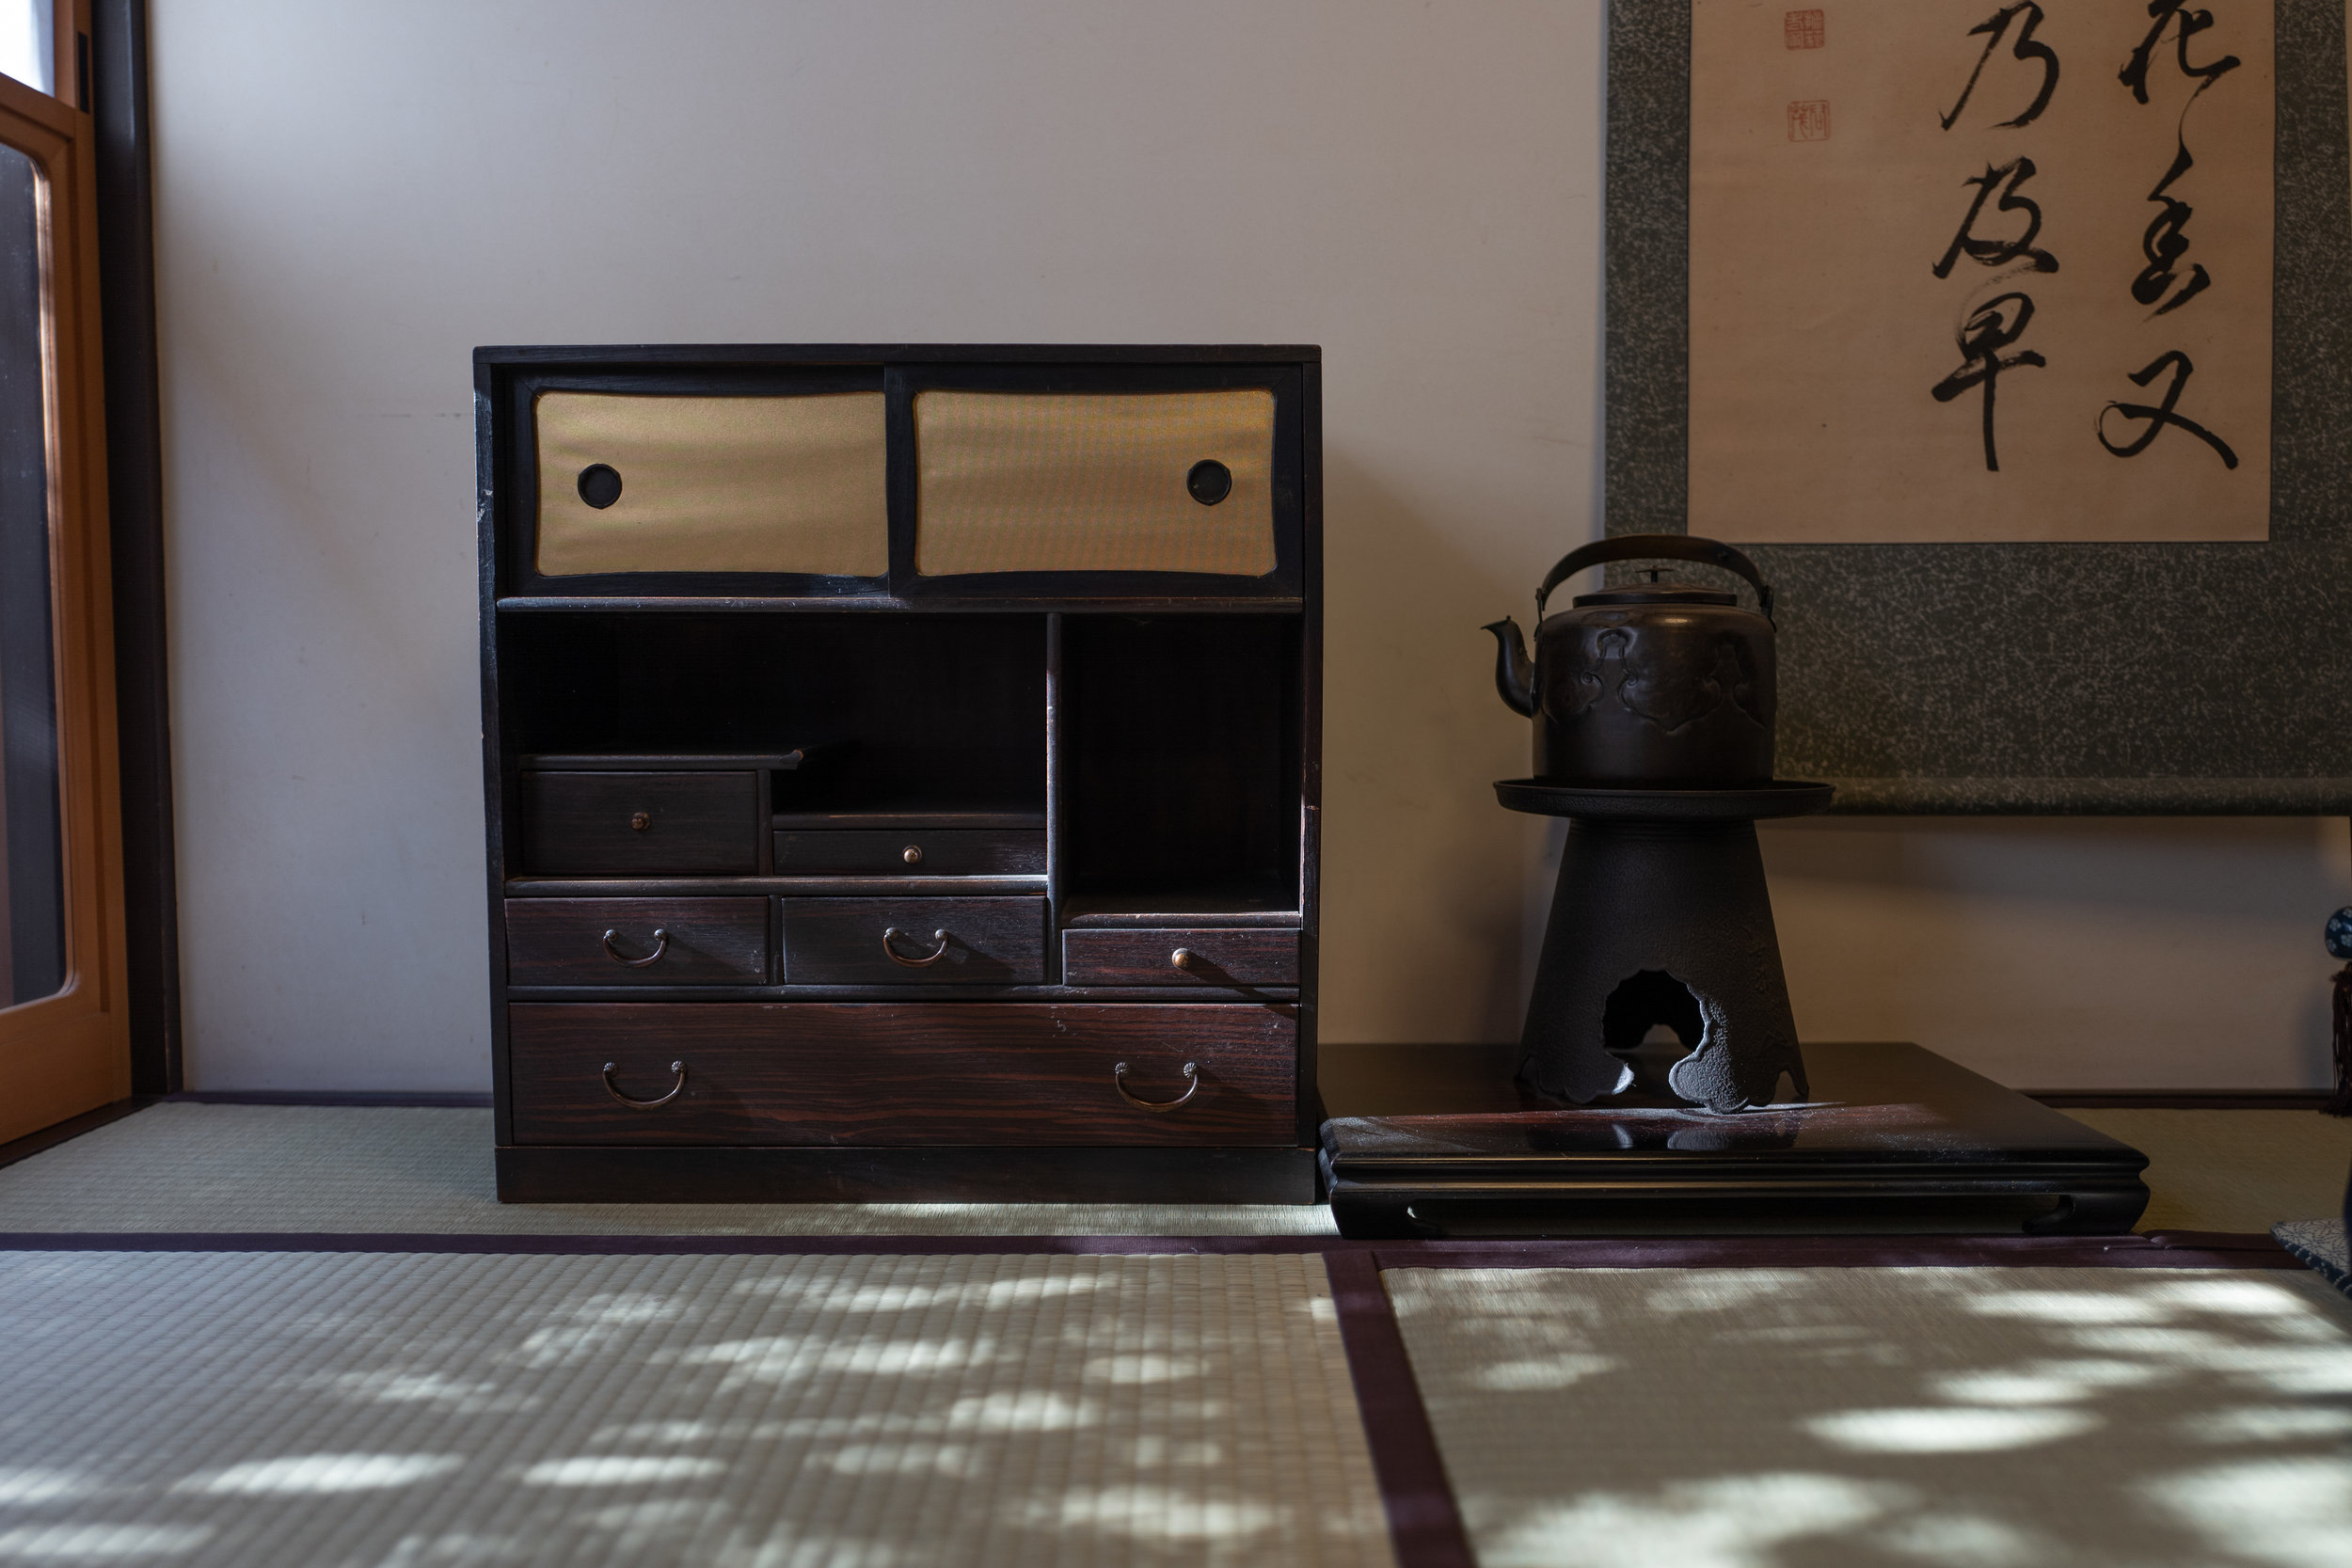 Tea chest and tea kettle at Ichiwa